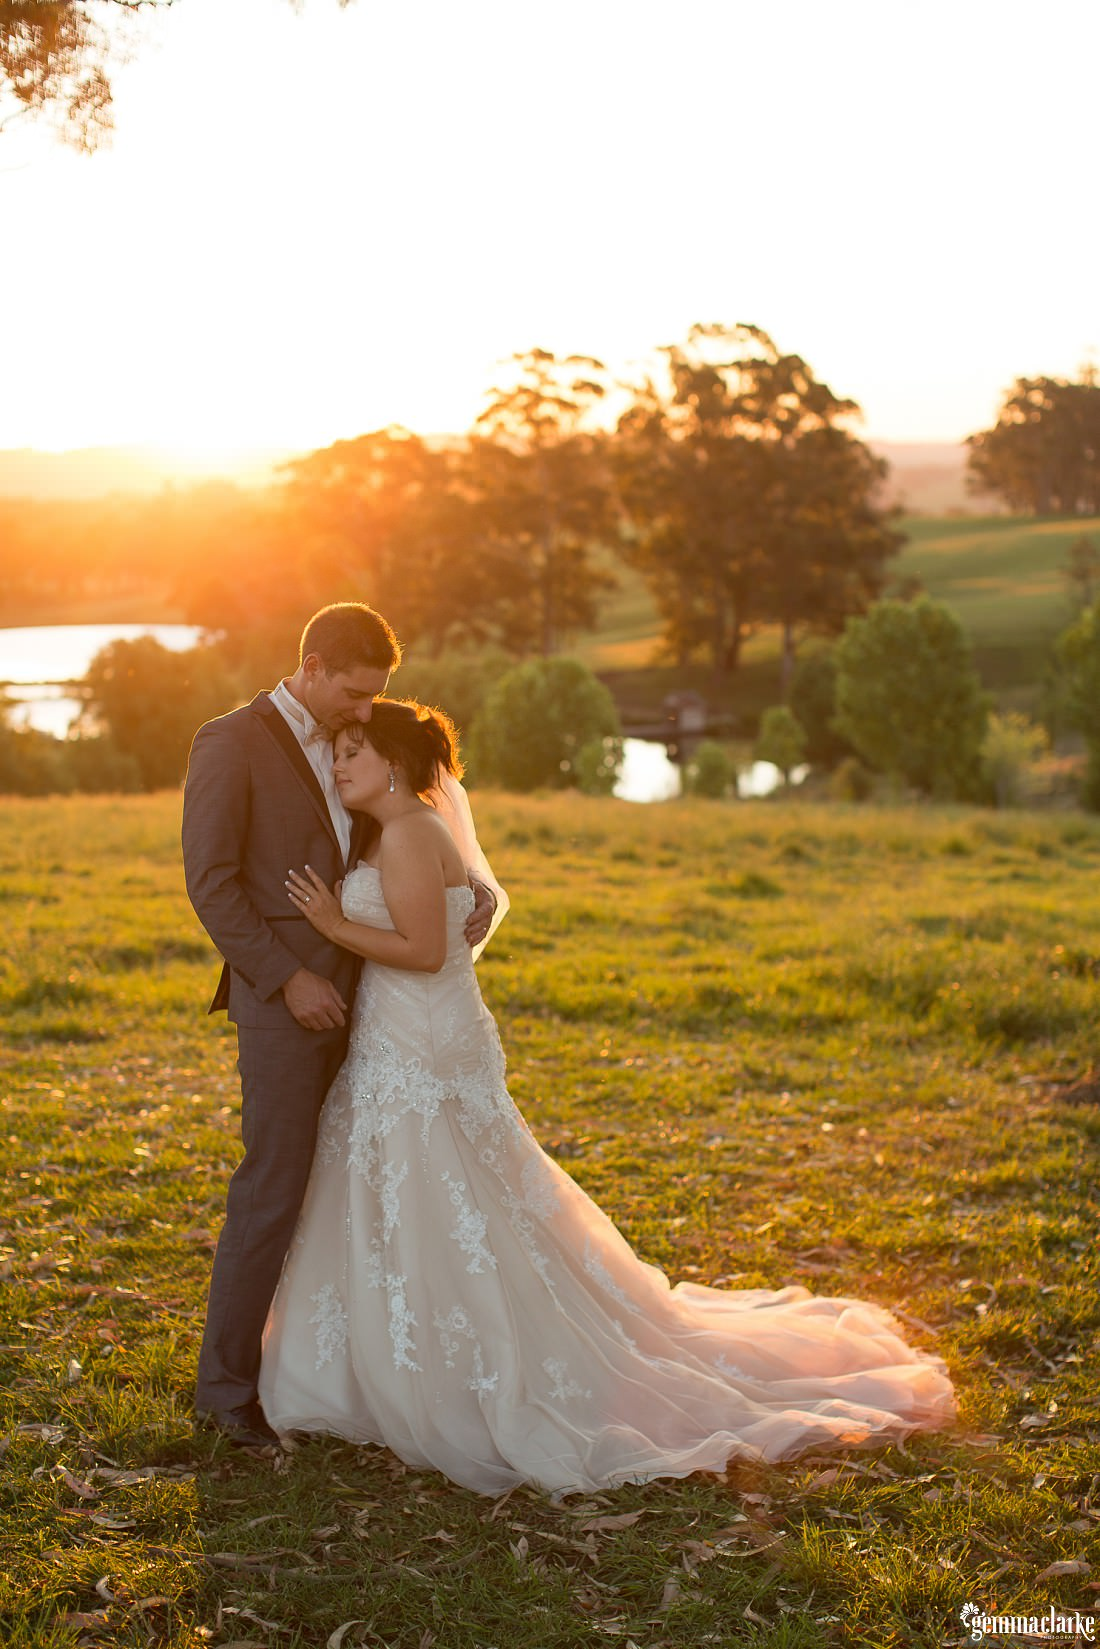 A bride leans her head against her groom's chest as the sun sets in the background - Mali Brae Farm Wedding